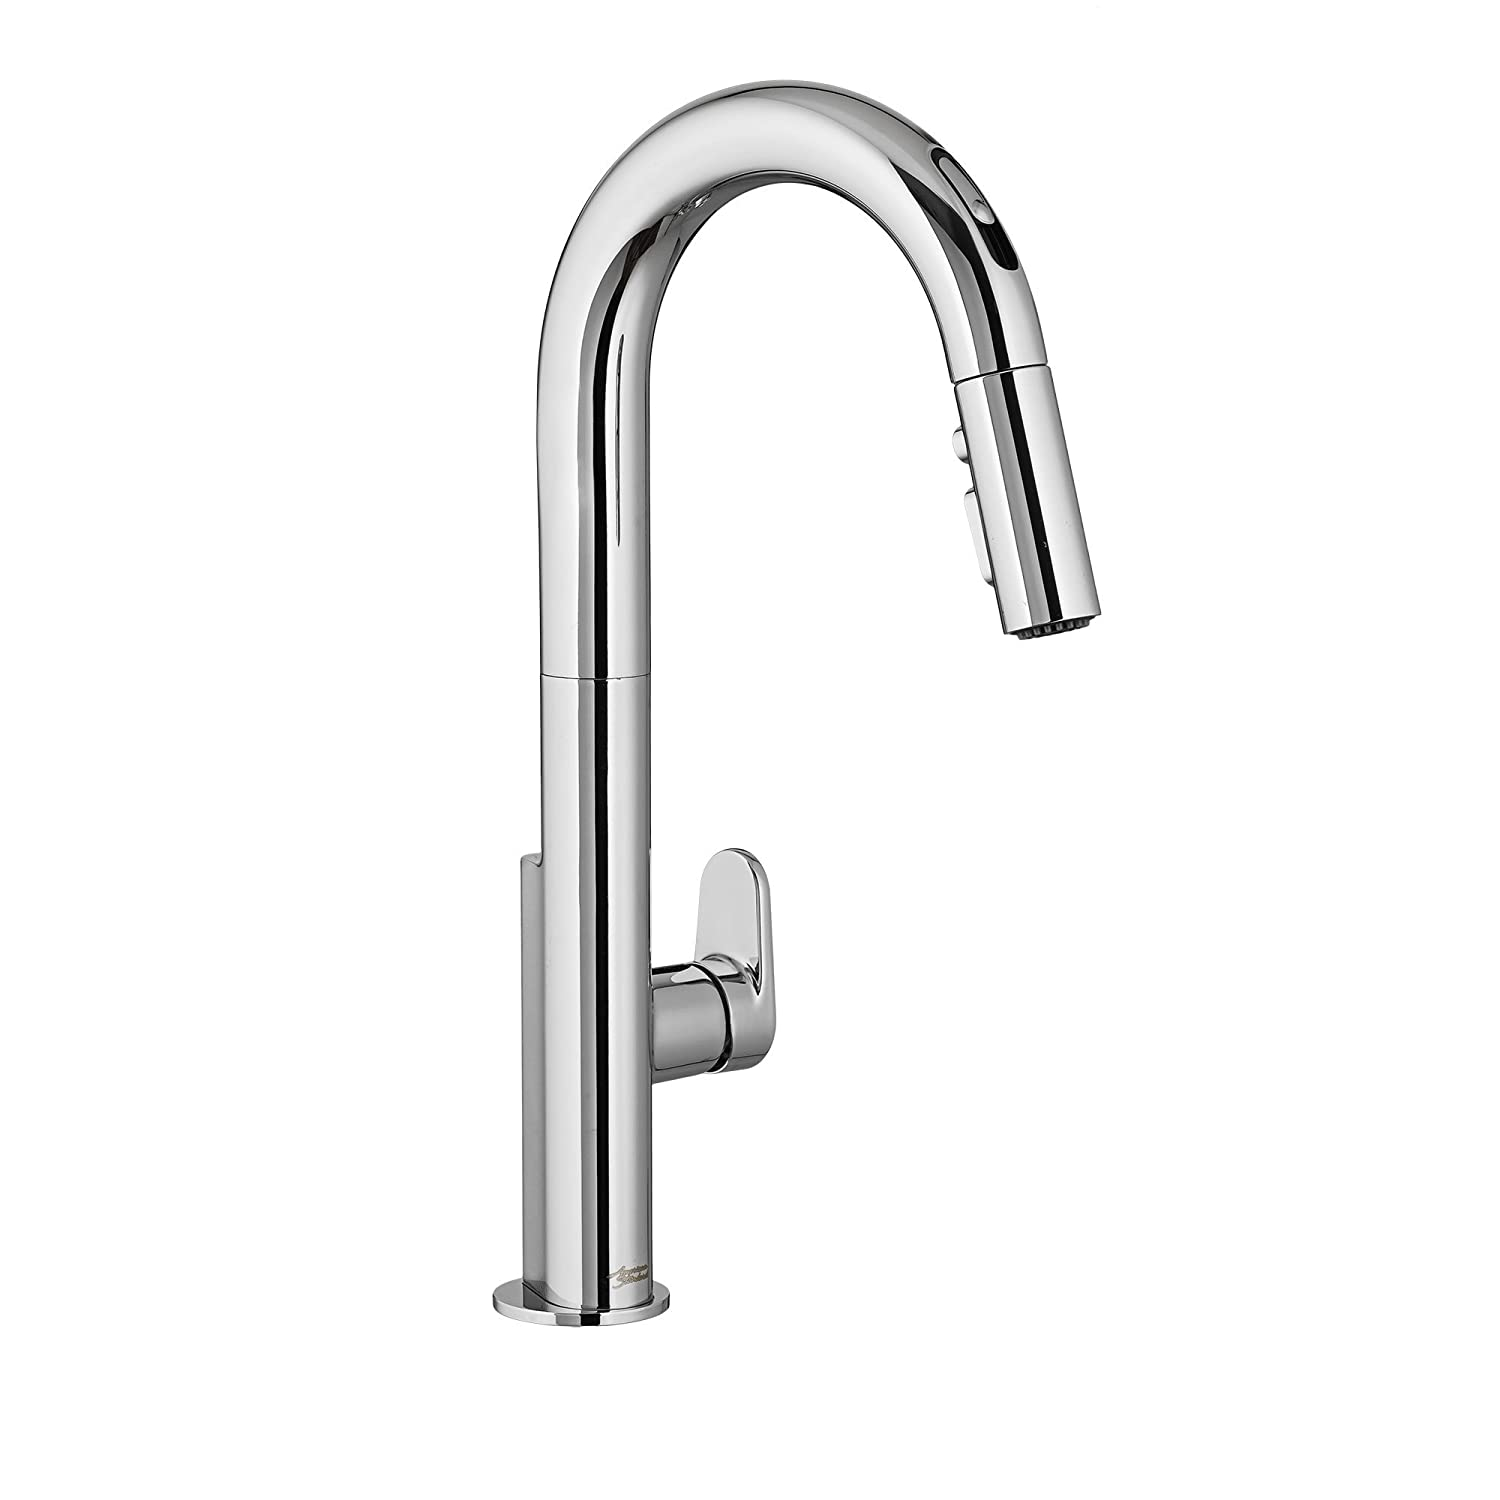 American Standard 4931380.002 Beale Single-Handle Pull Down Kitchen Faucet with Selectronic Hands-Free Technology, Polished Chrome